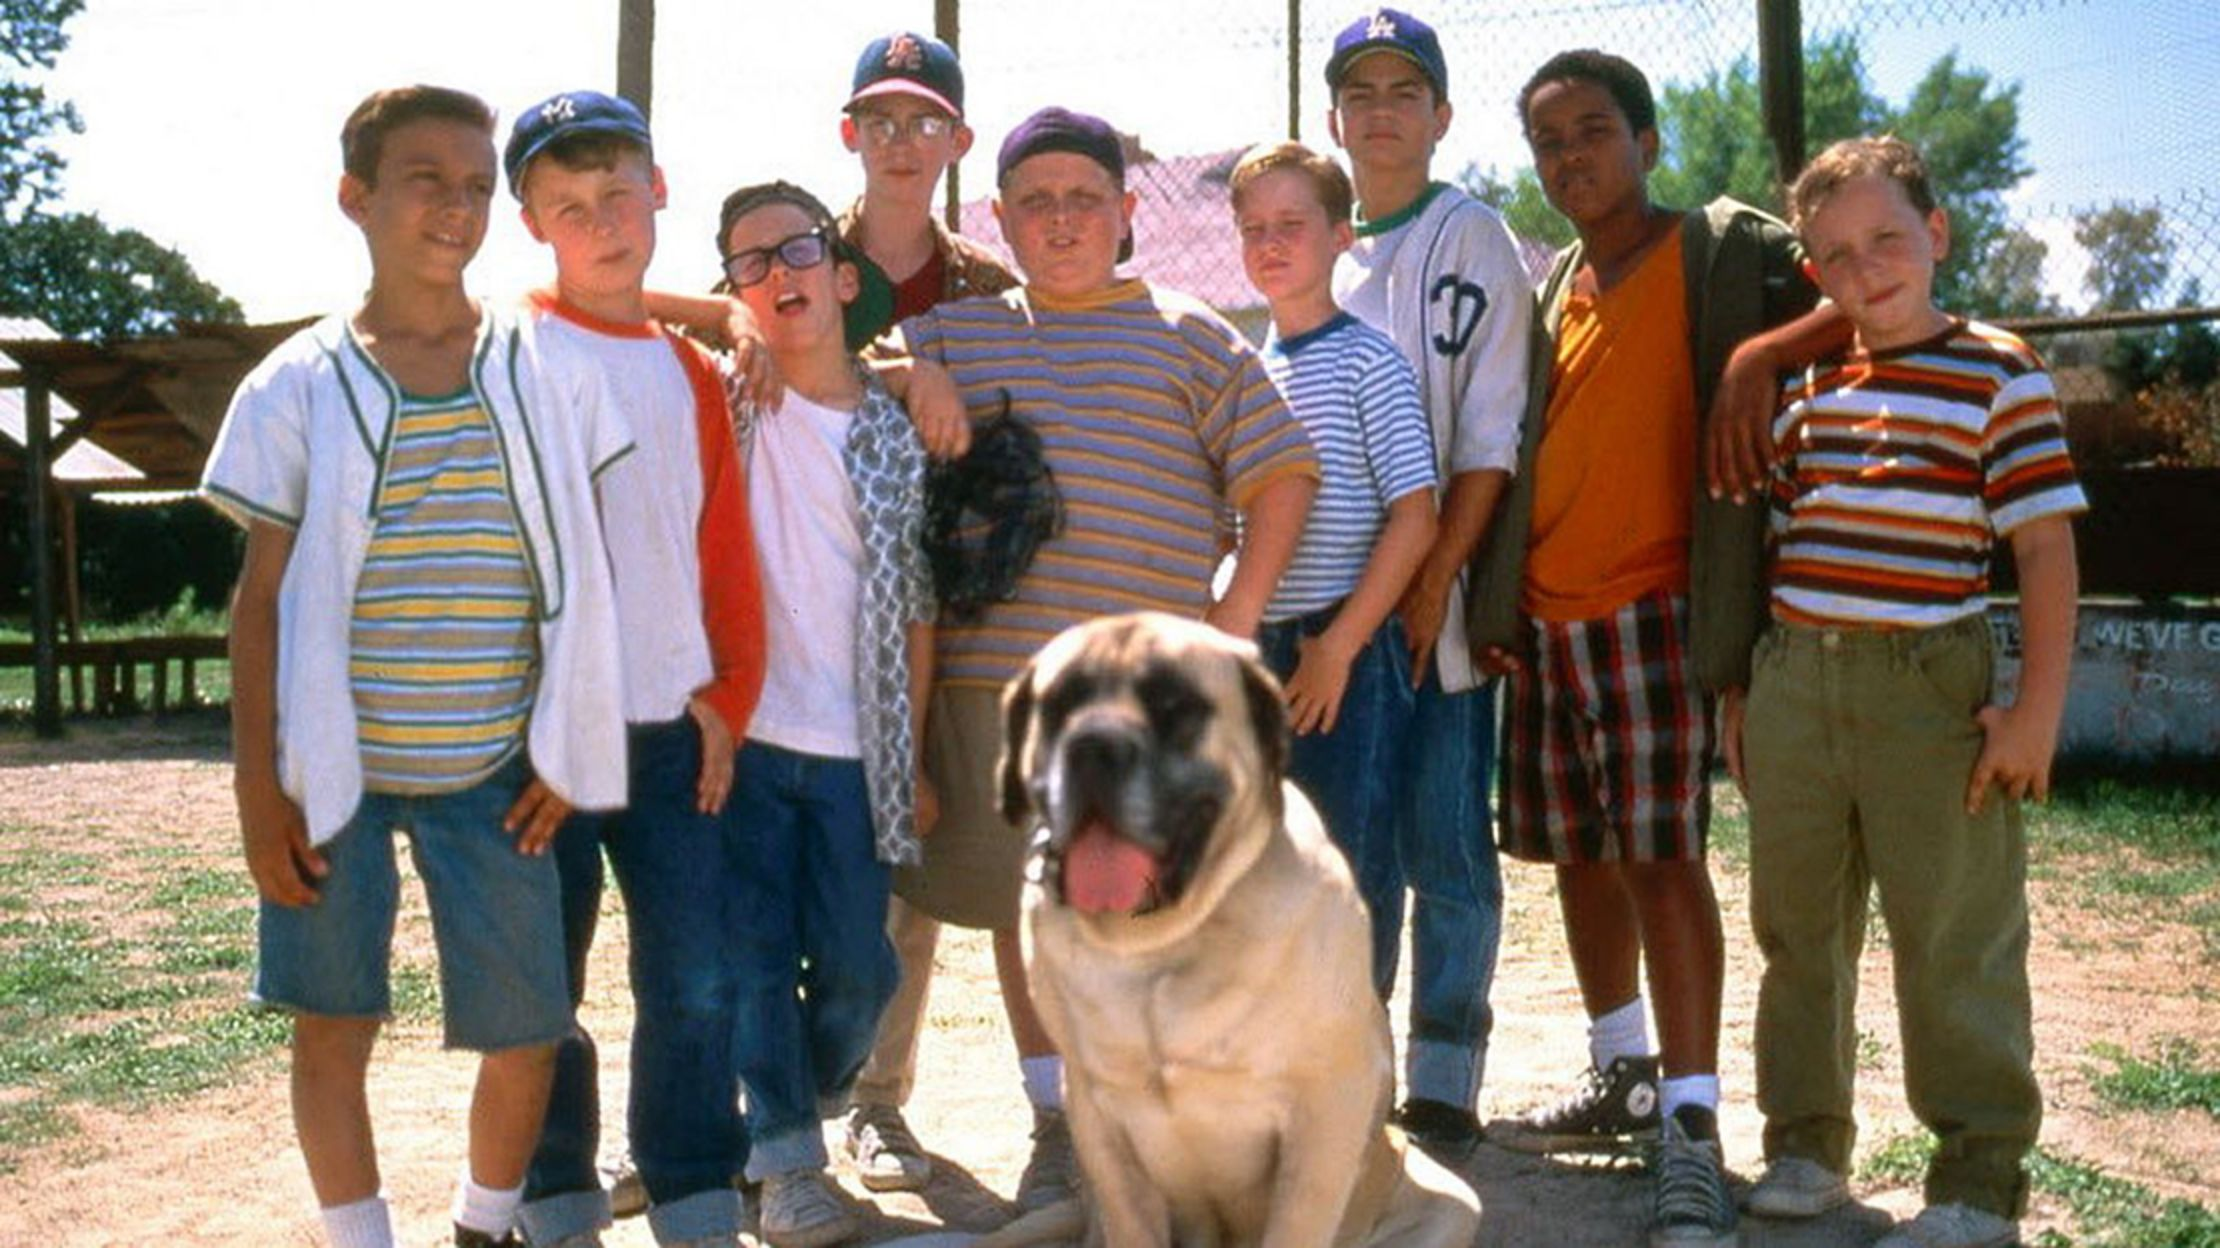 'The Sandlot' Is Just As Fun 28 Years Later